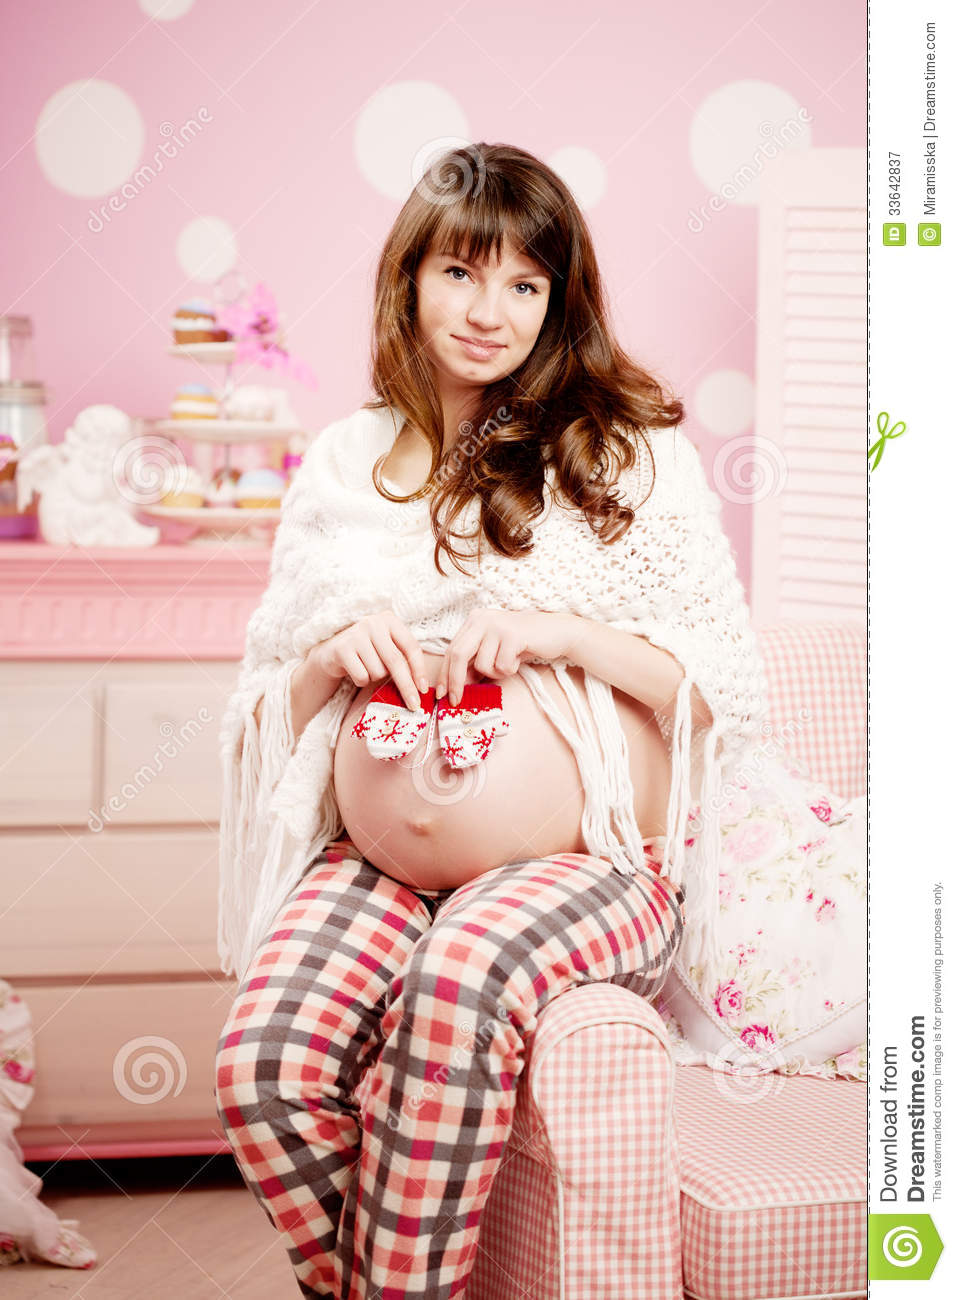 Happy pregnant woman-6966